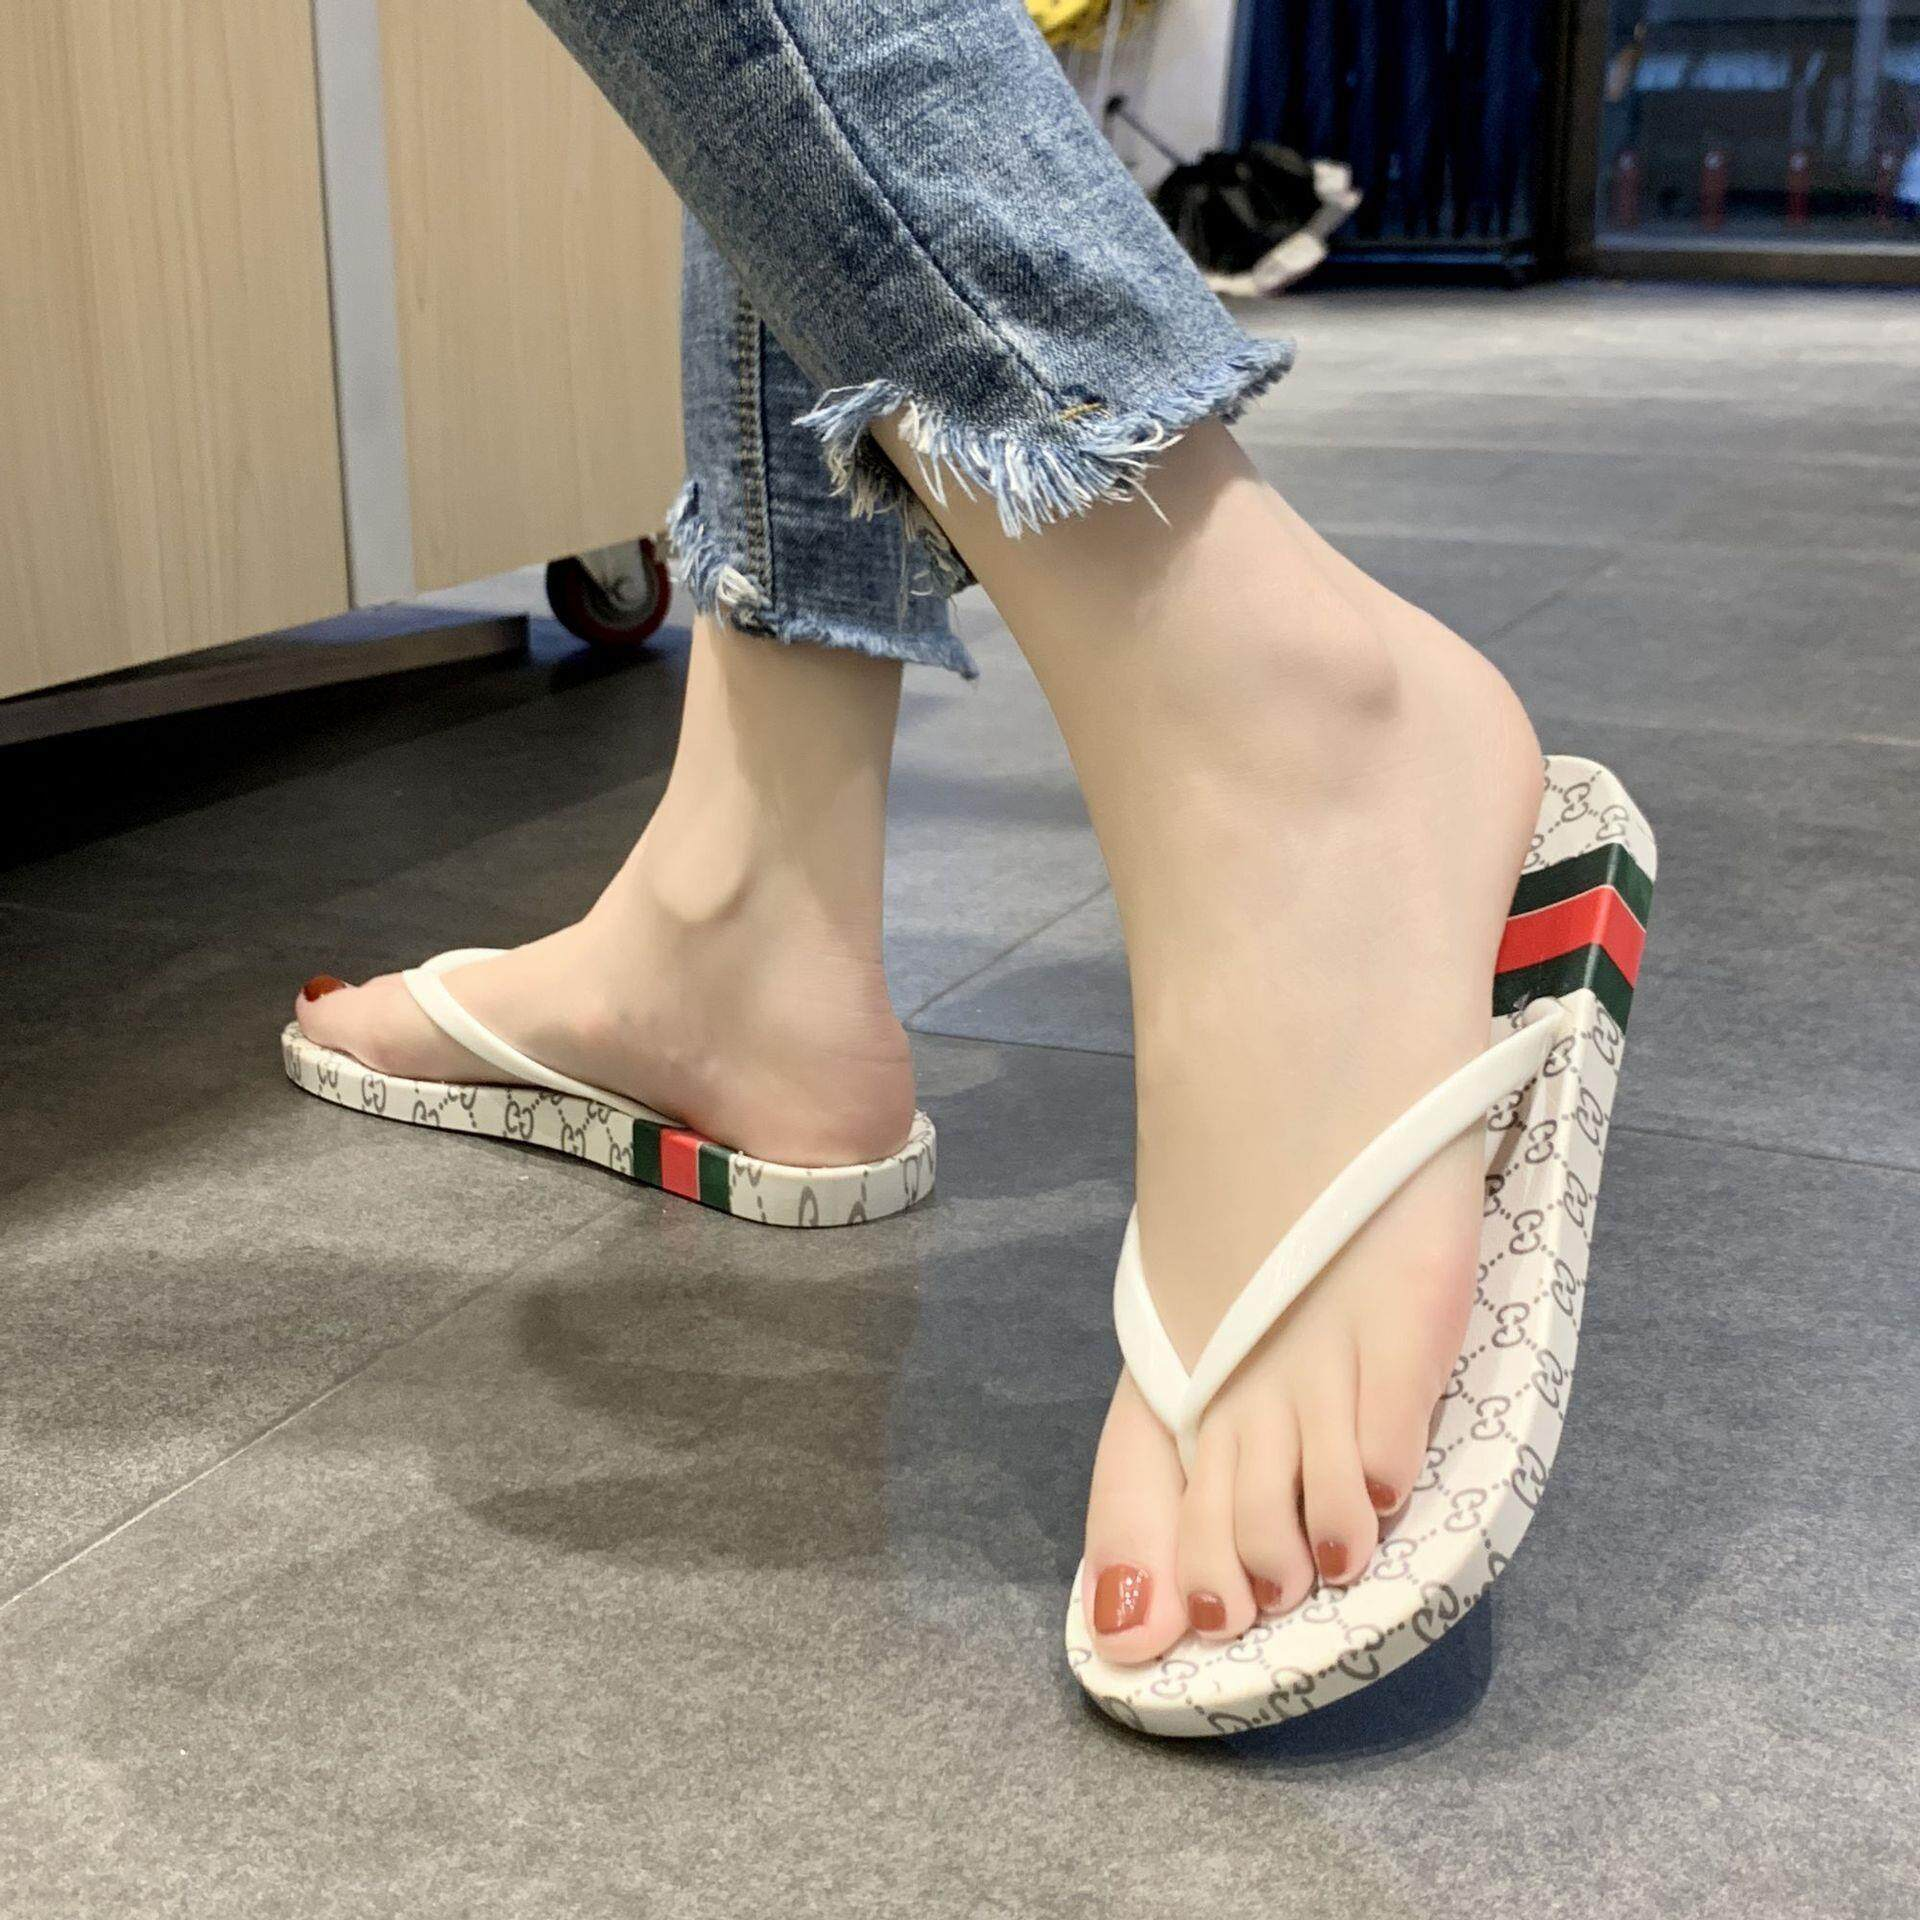 af8f489af Guccis Slippers for men and women shoes summer light slip resistant wear